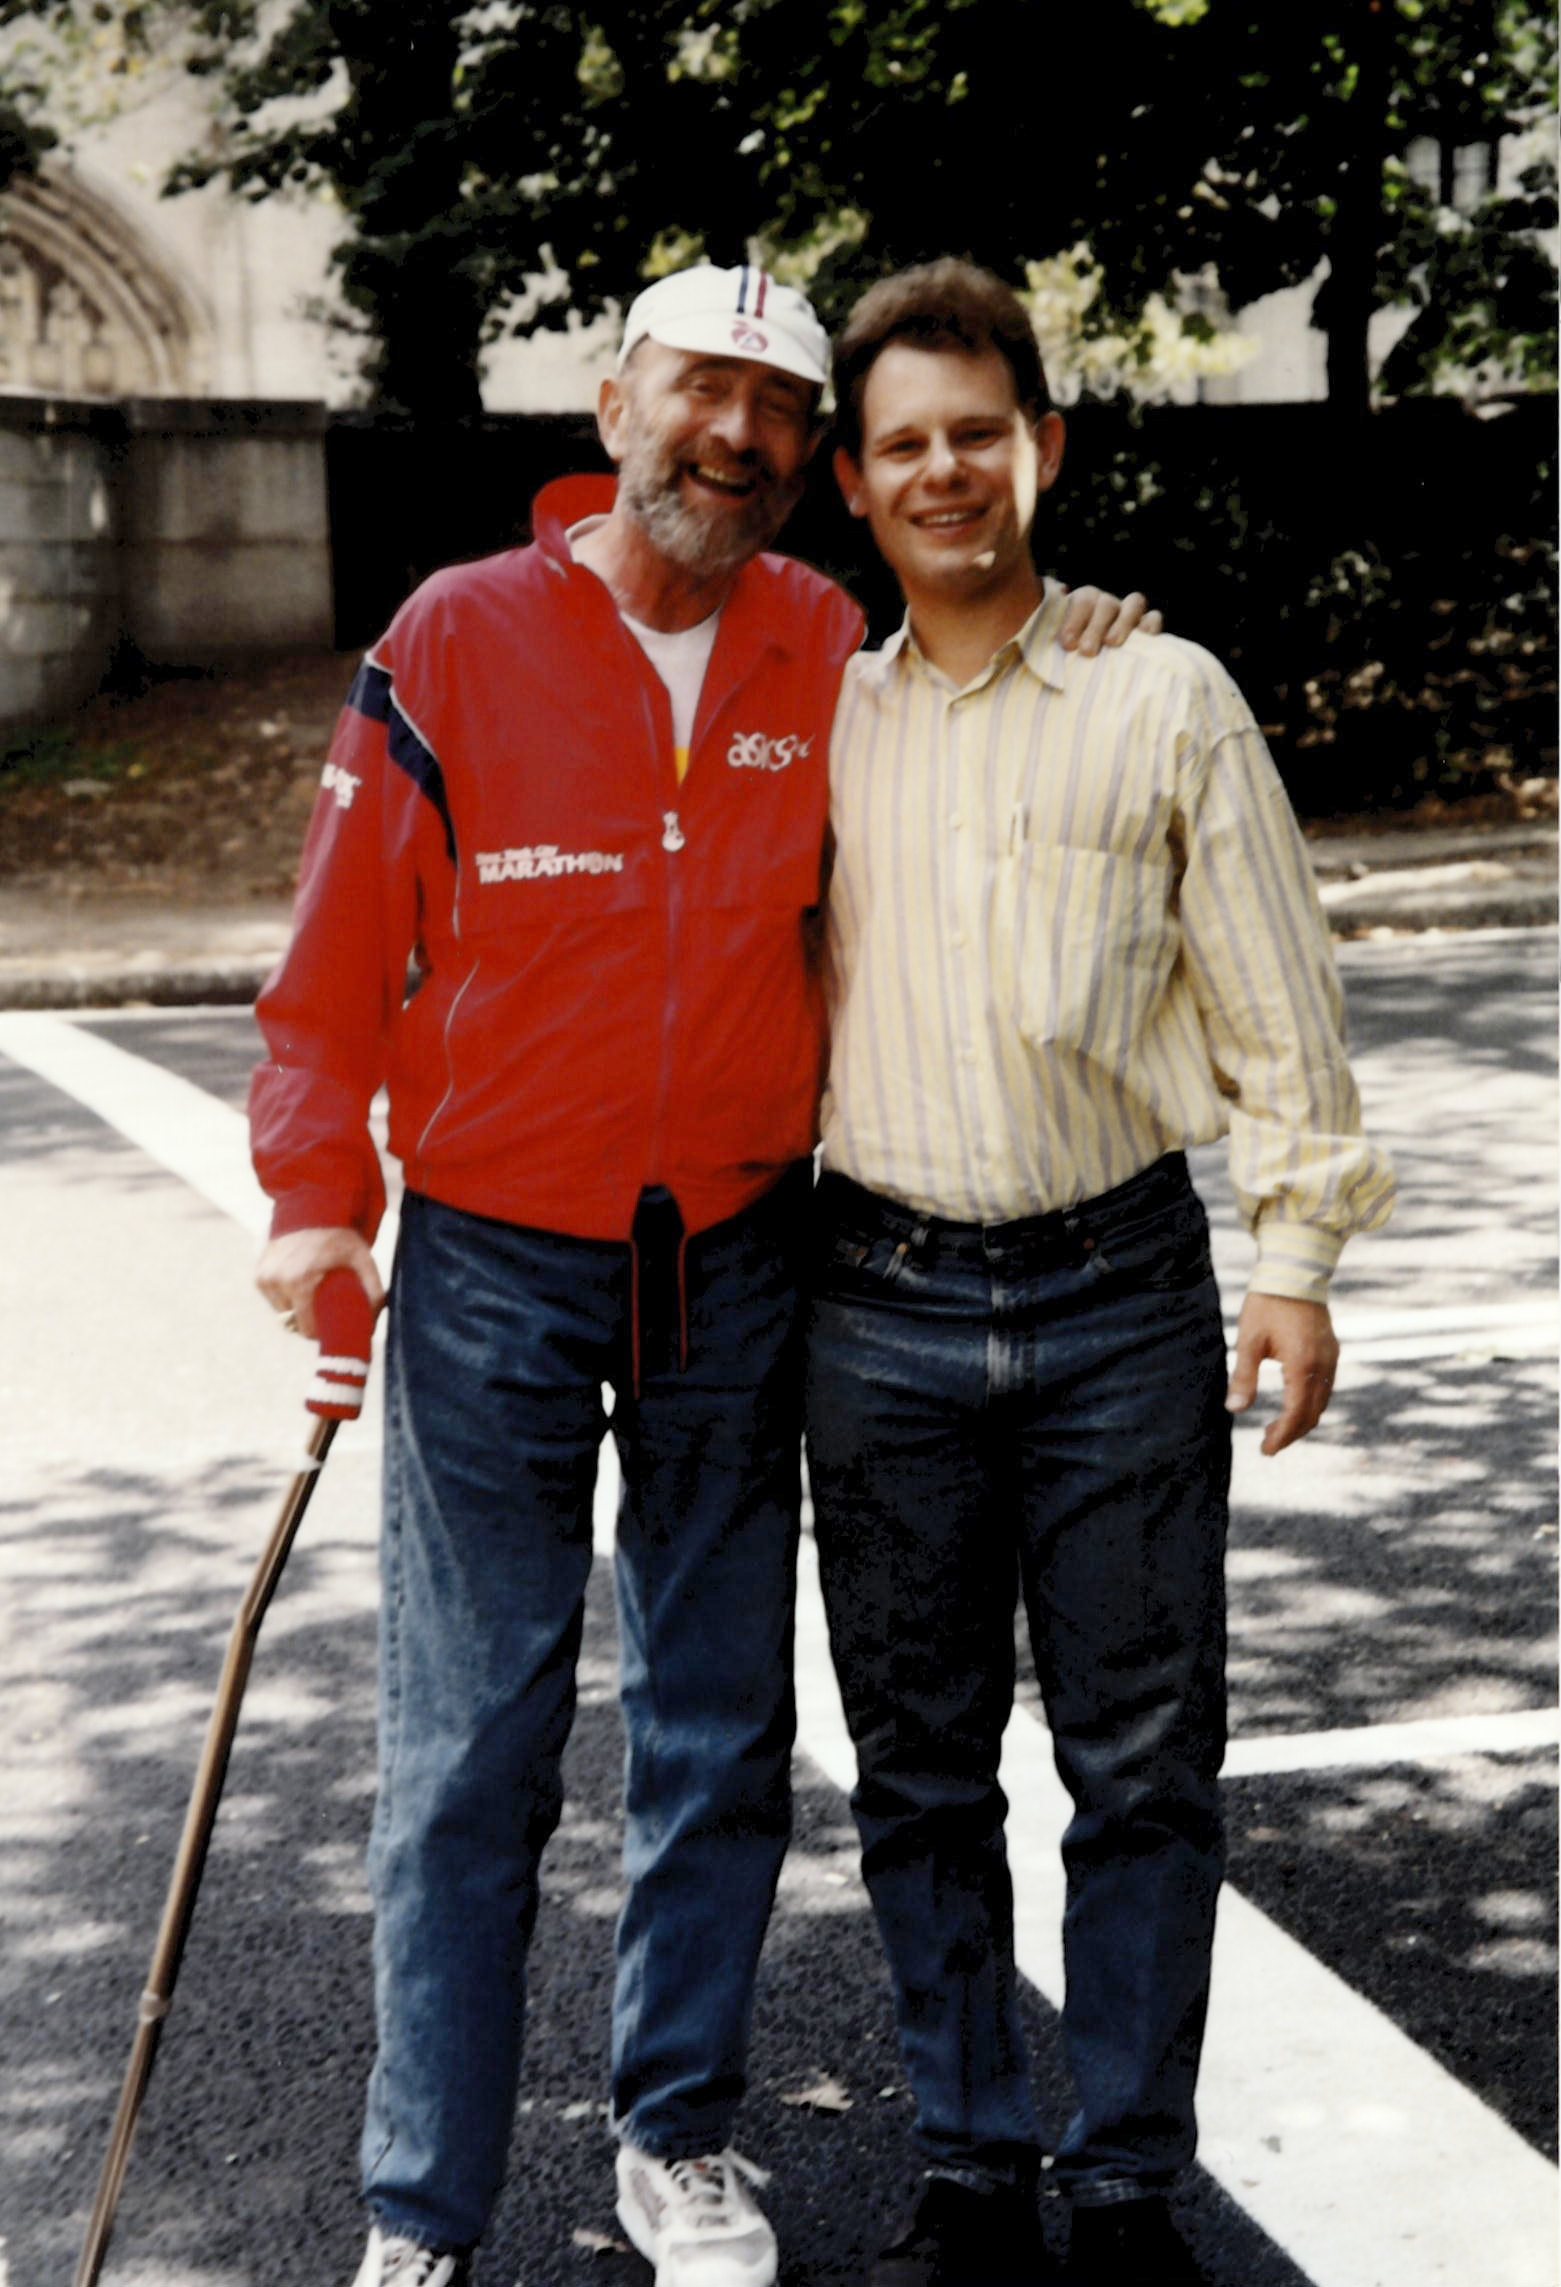 Fred Lebow, founder of New York City Marathon and APCG's founder, Jonathan Cooper.